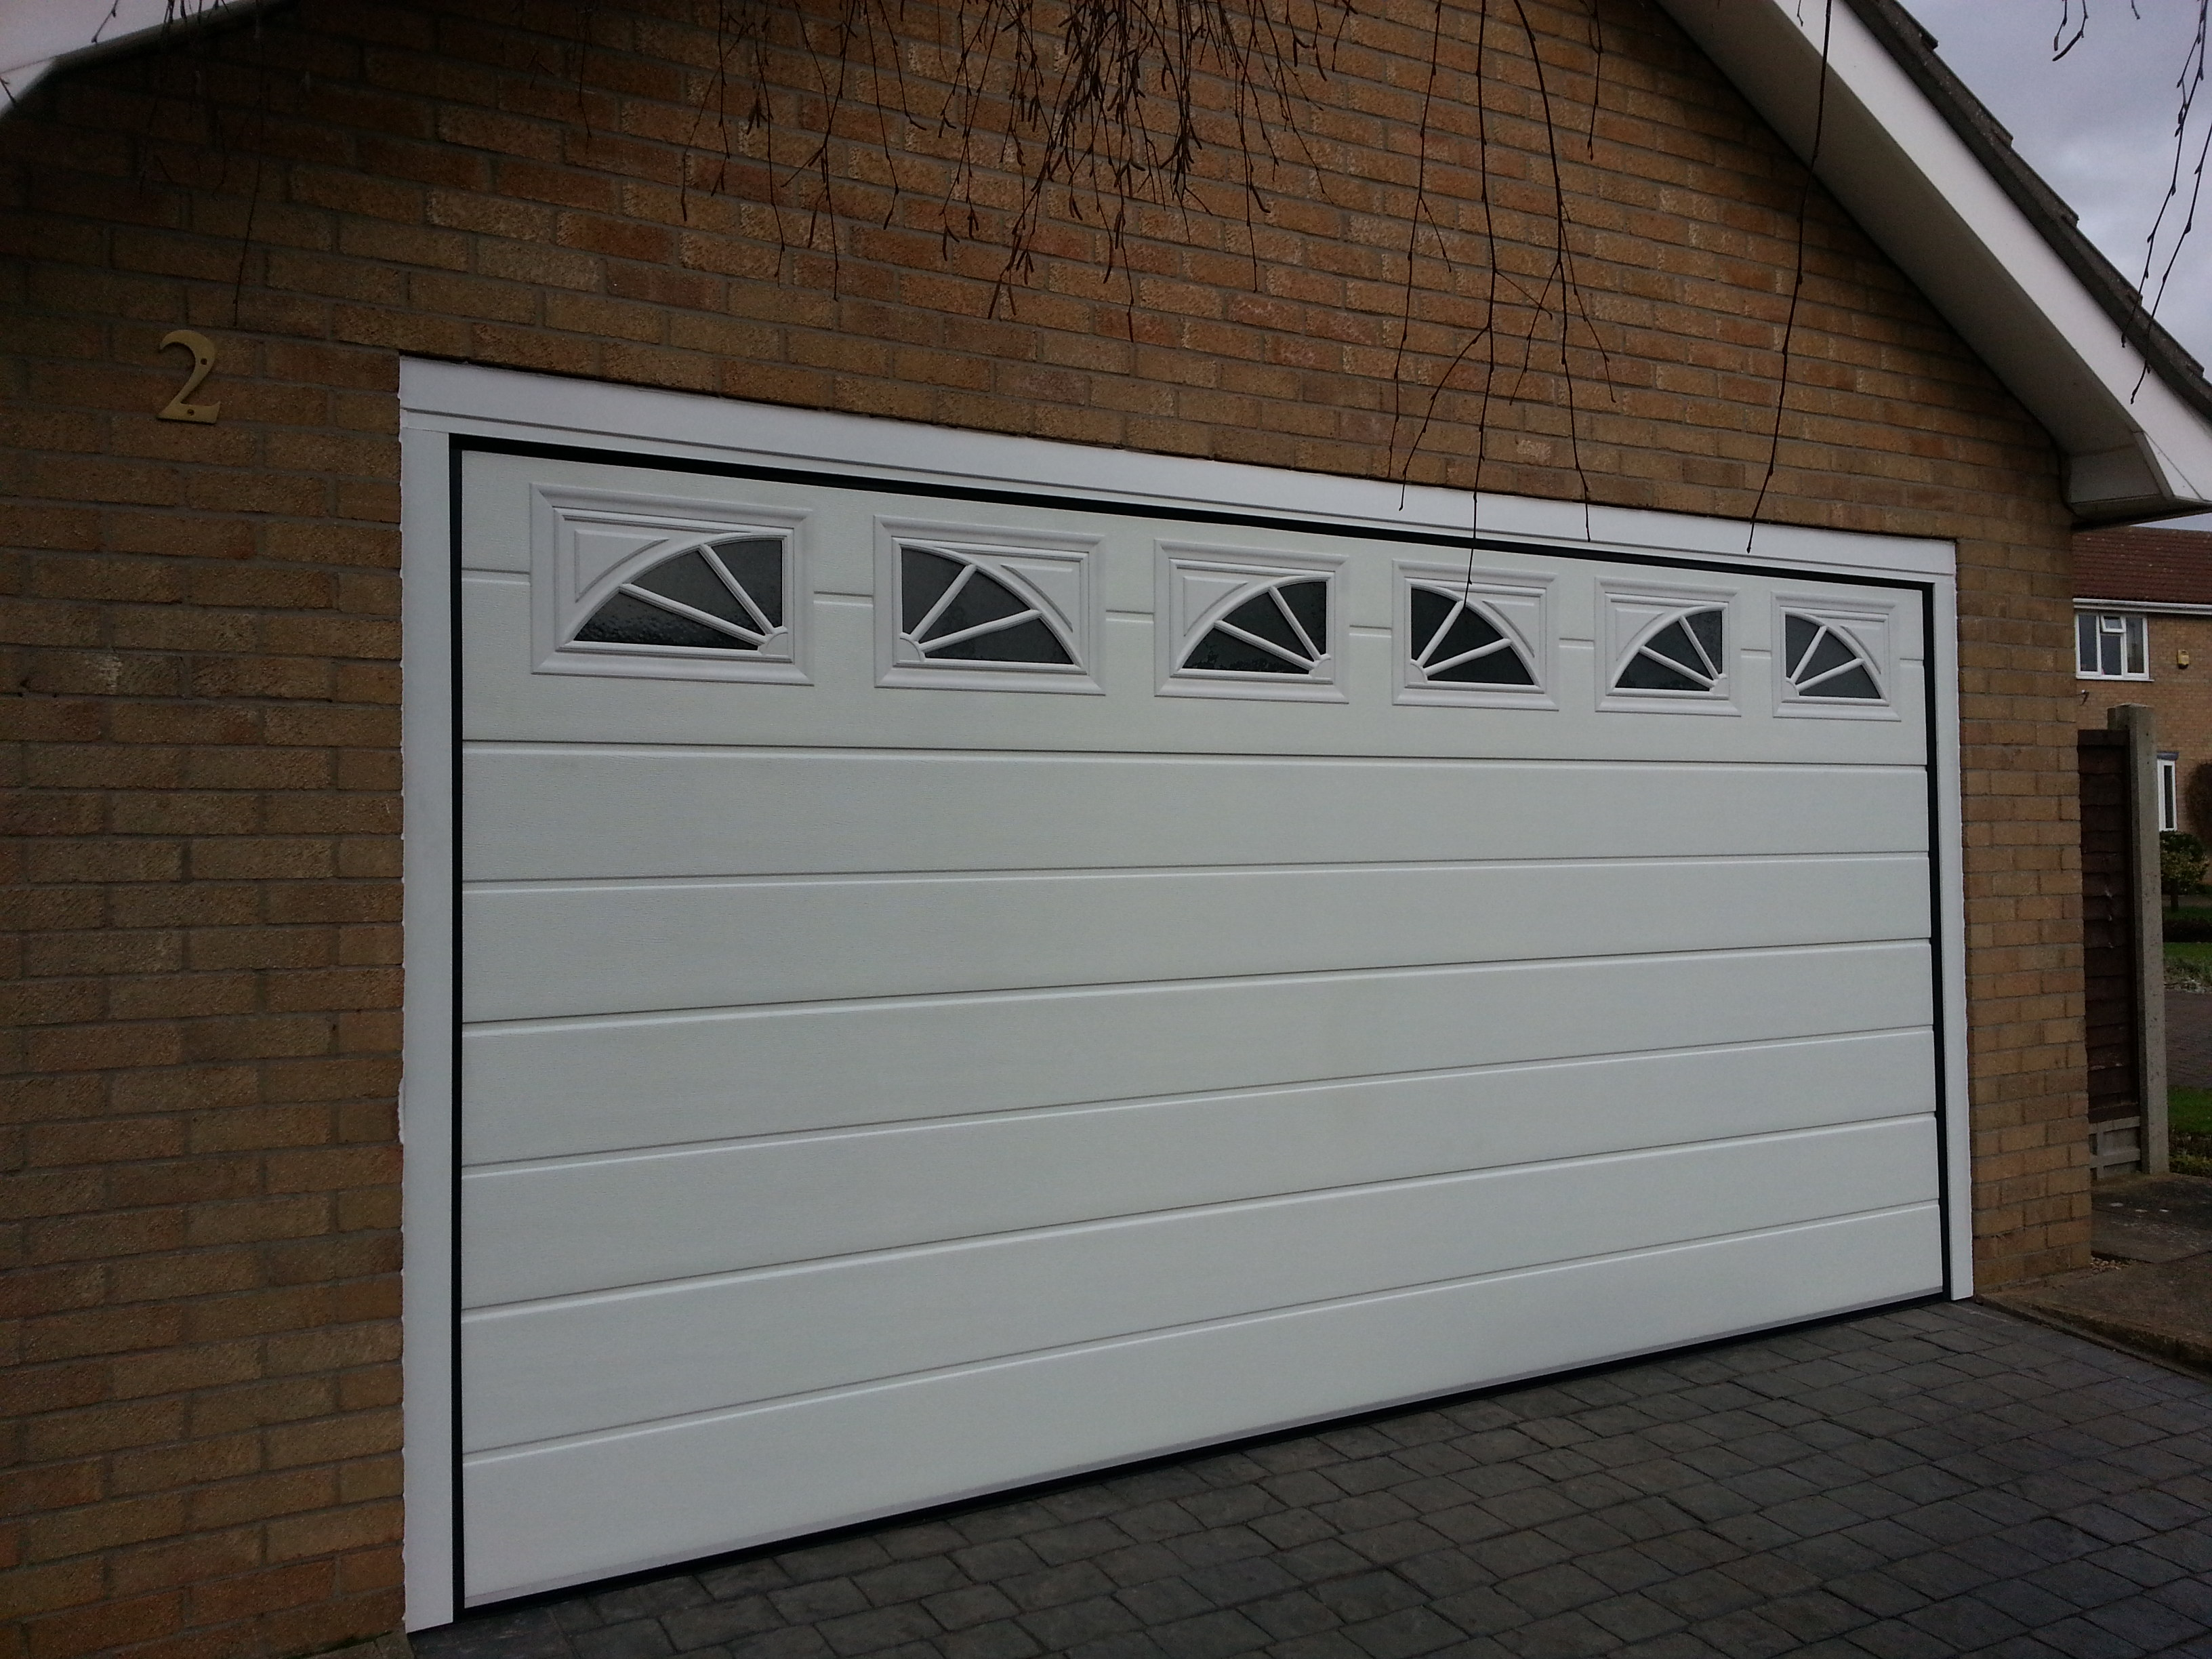 2448 #5D432F New Garage Door With Windows – Grantham – Garage Door Company  save image Garage Doors New 36873264